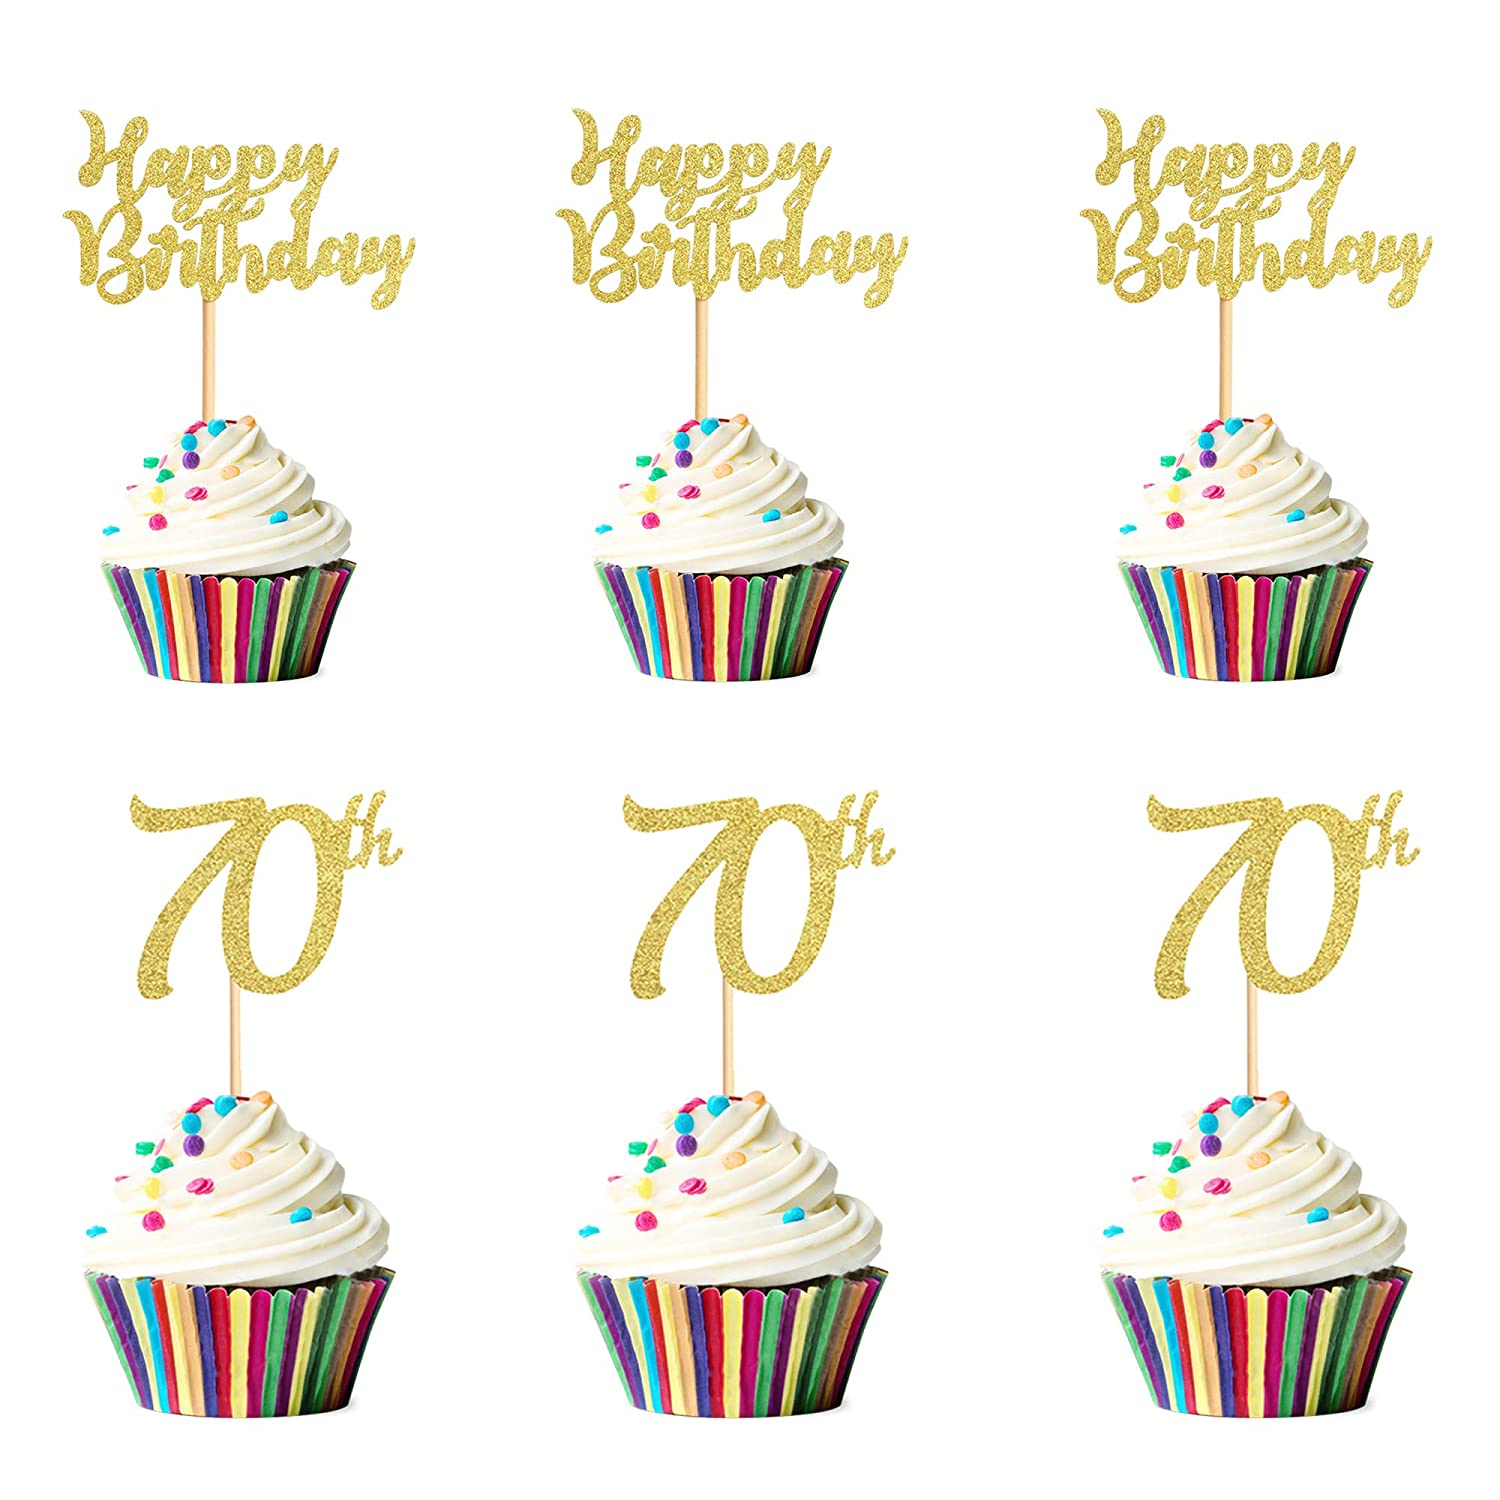 Unimall Super sale period limited Pack of 24 Gold Glitter Birthday Sale item Happy Topper Cupcake 70